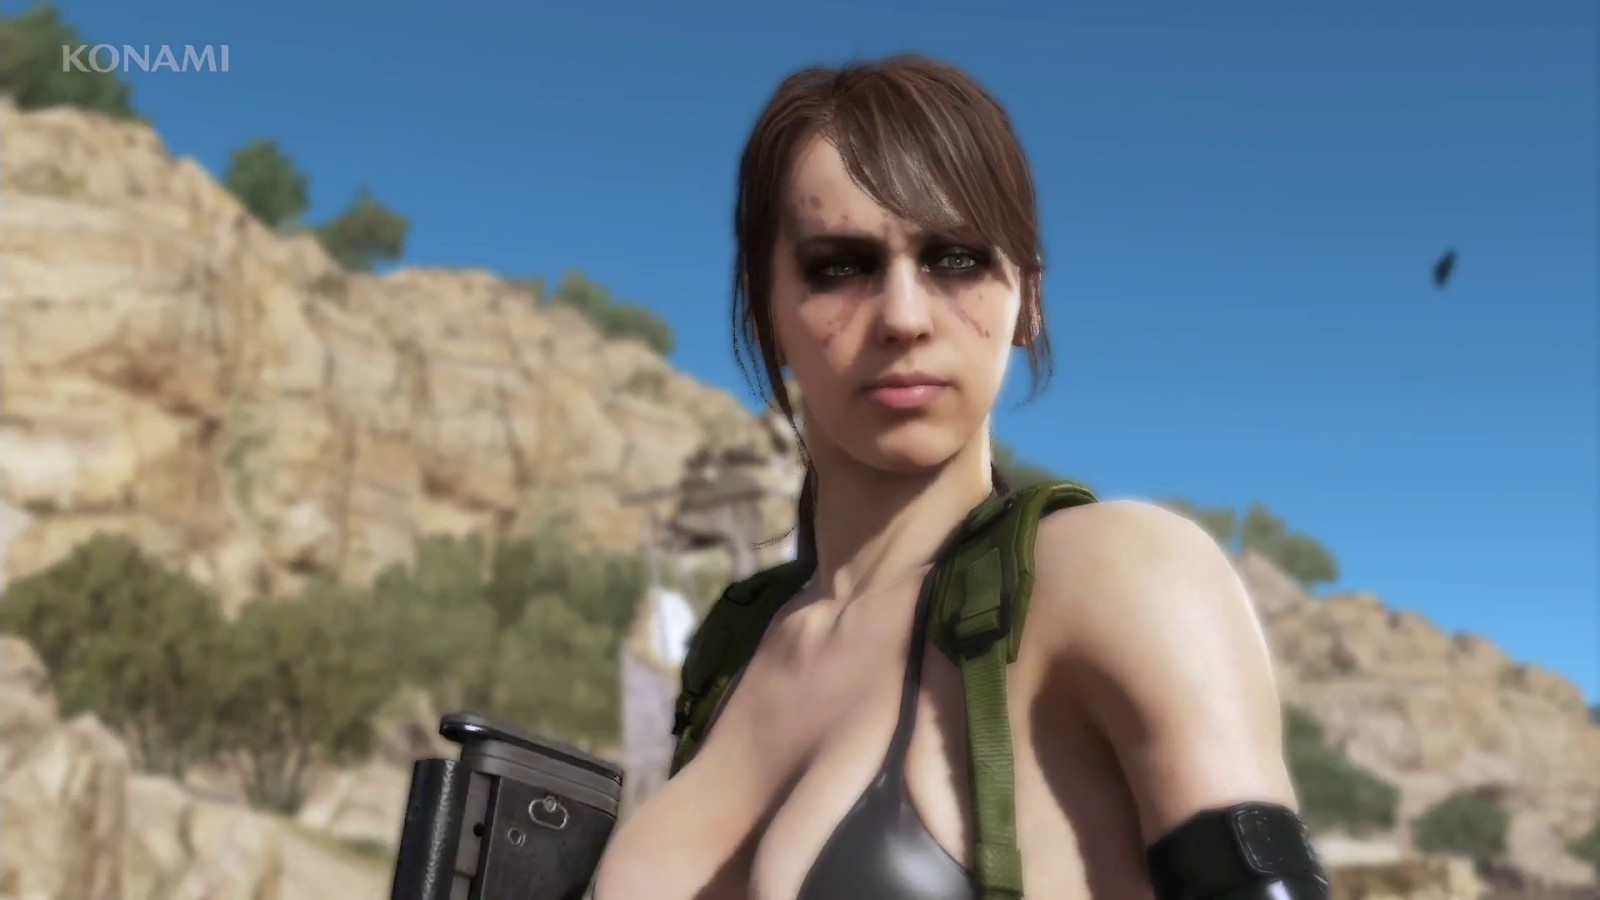 metal_gear_V_phantom_pain_Quiet